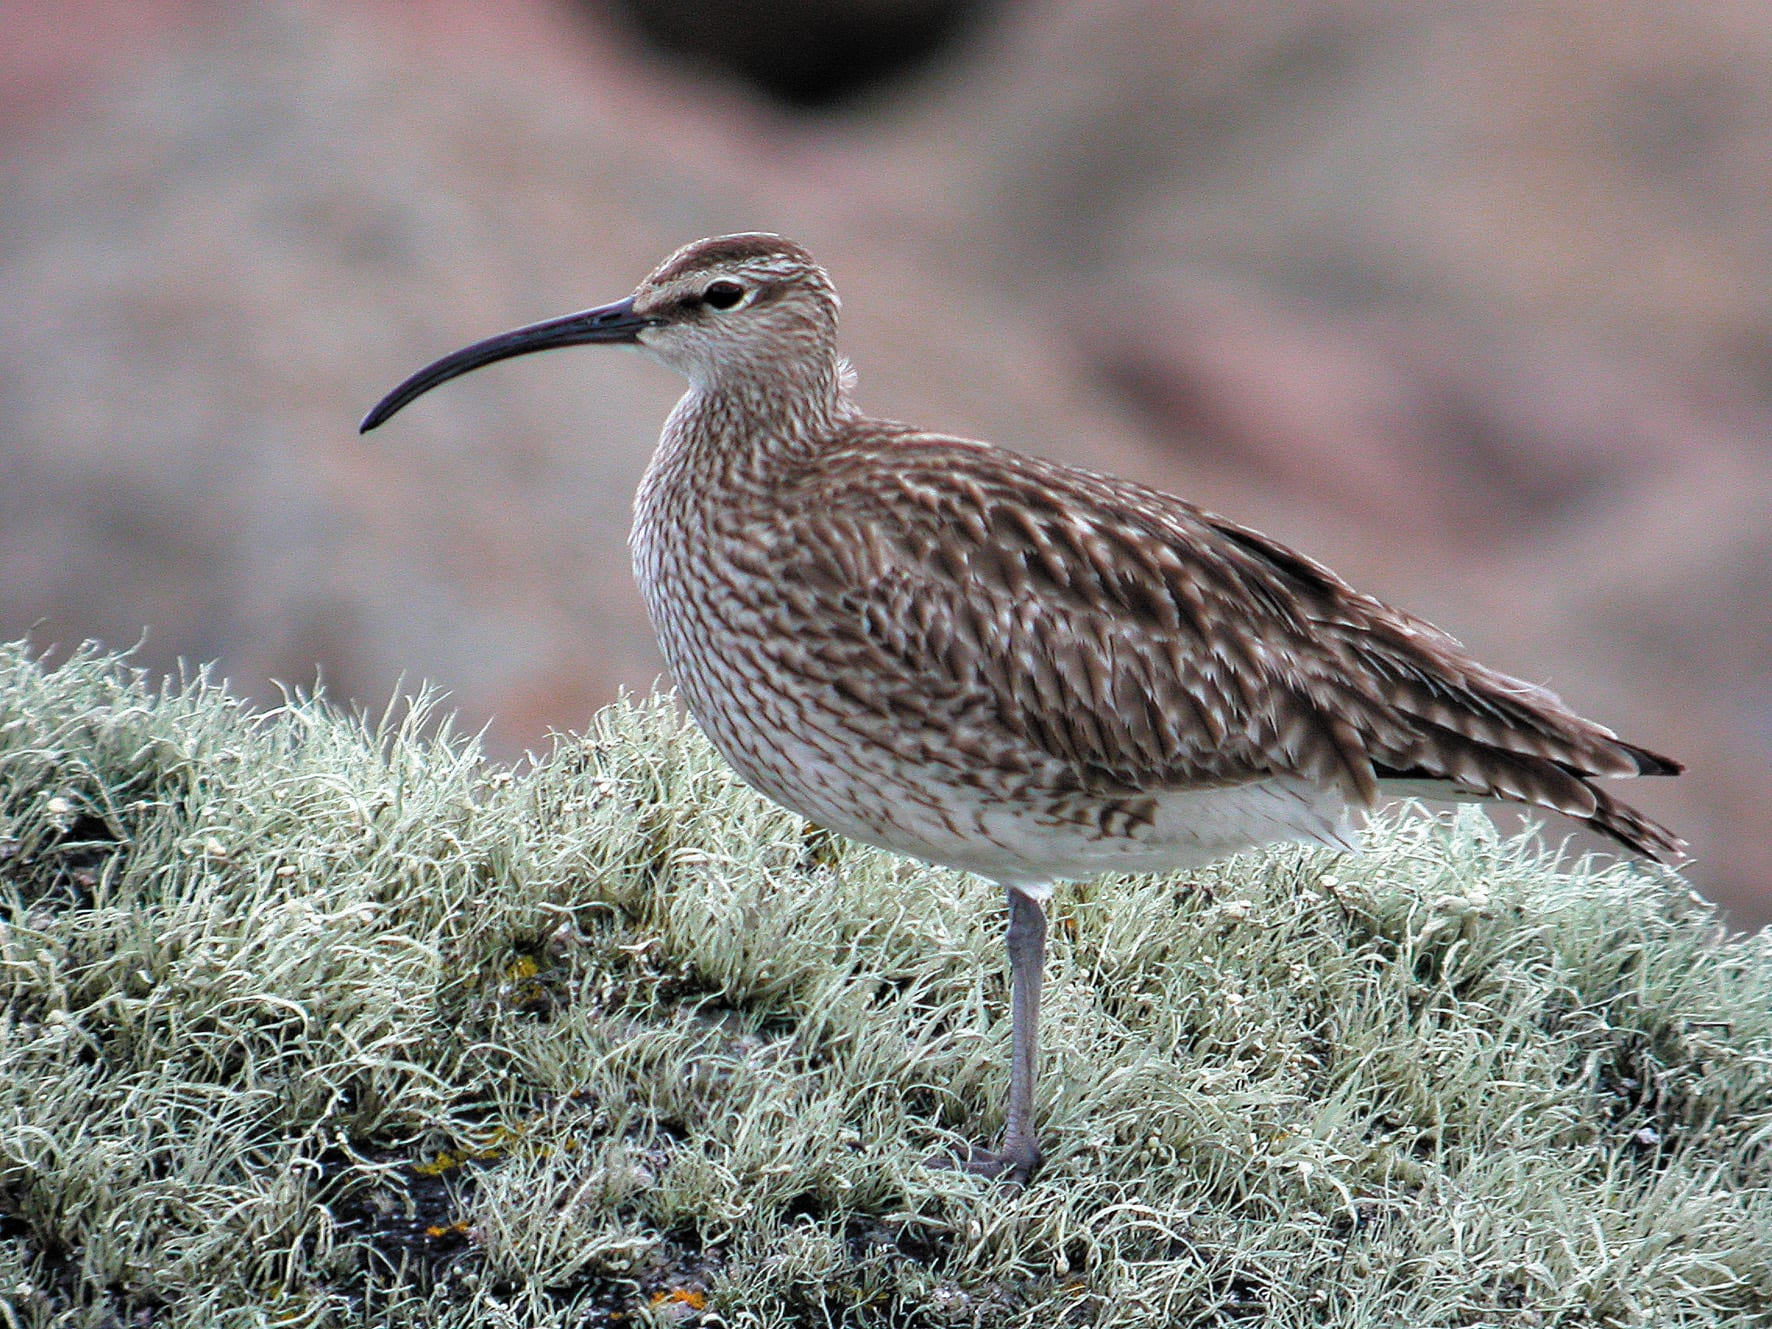 whimbrel-standing-on-lichen-covered-rock